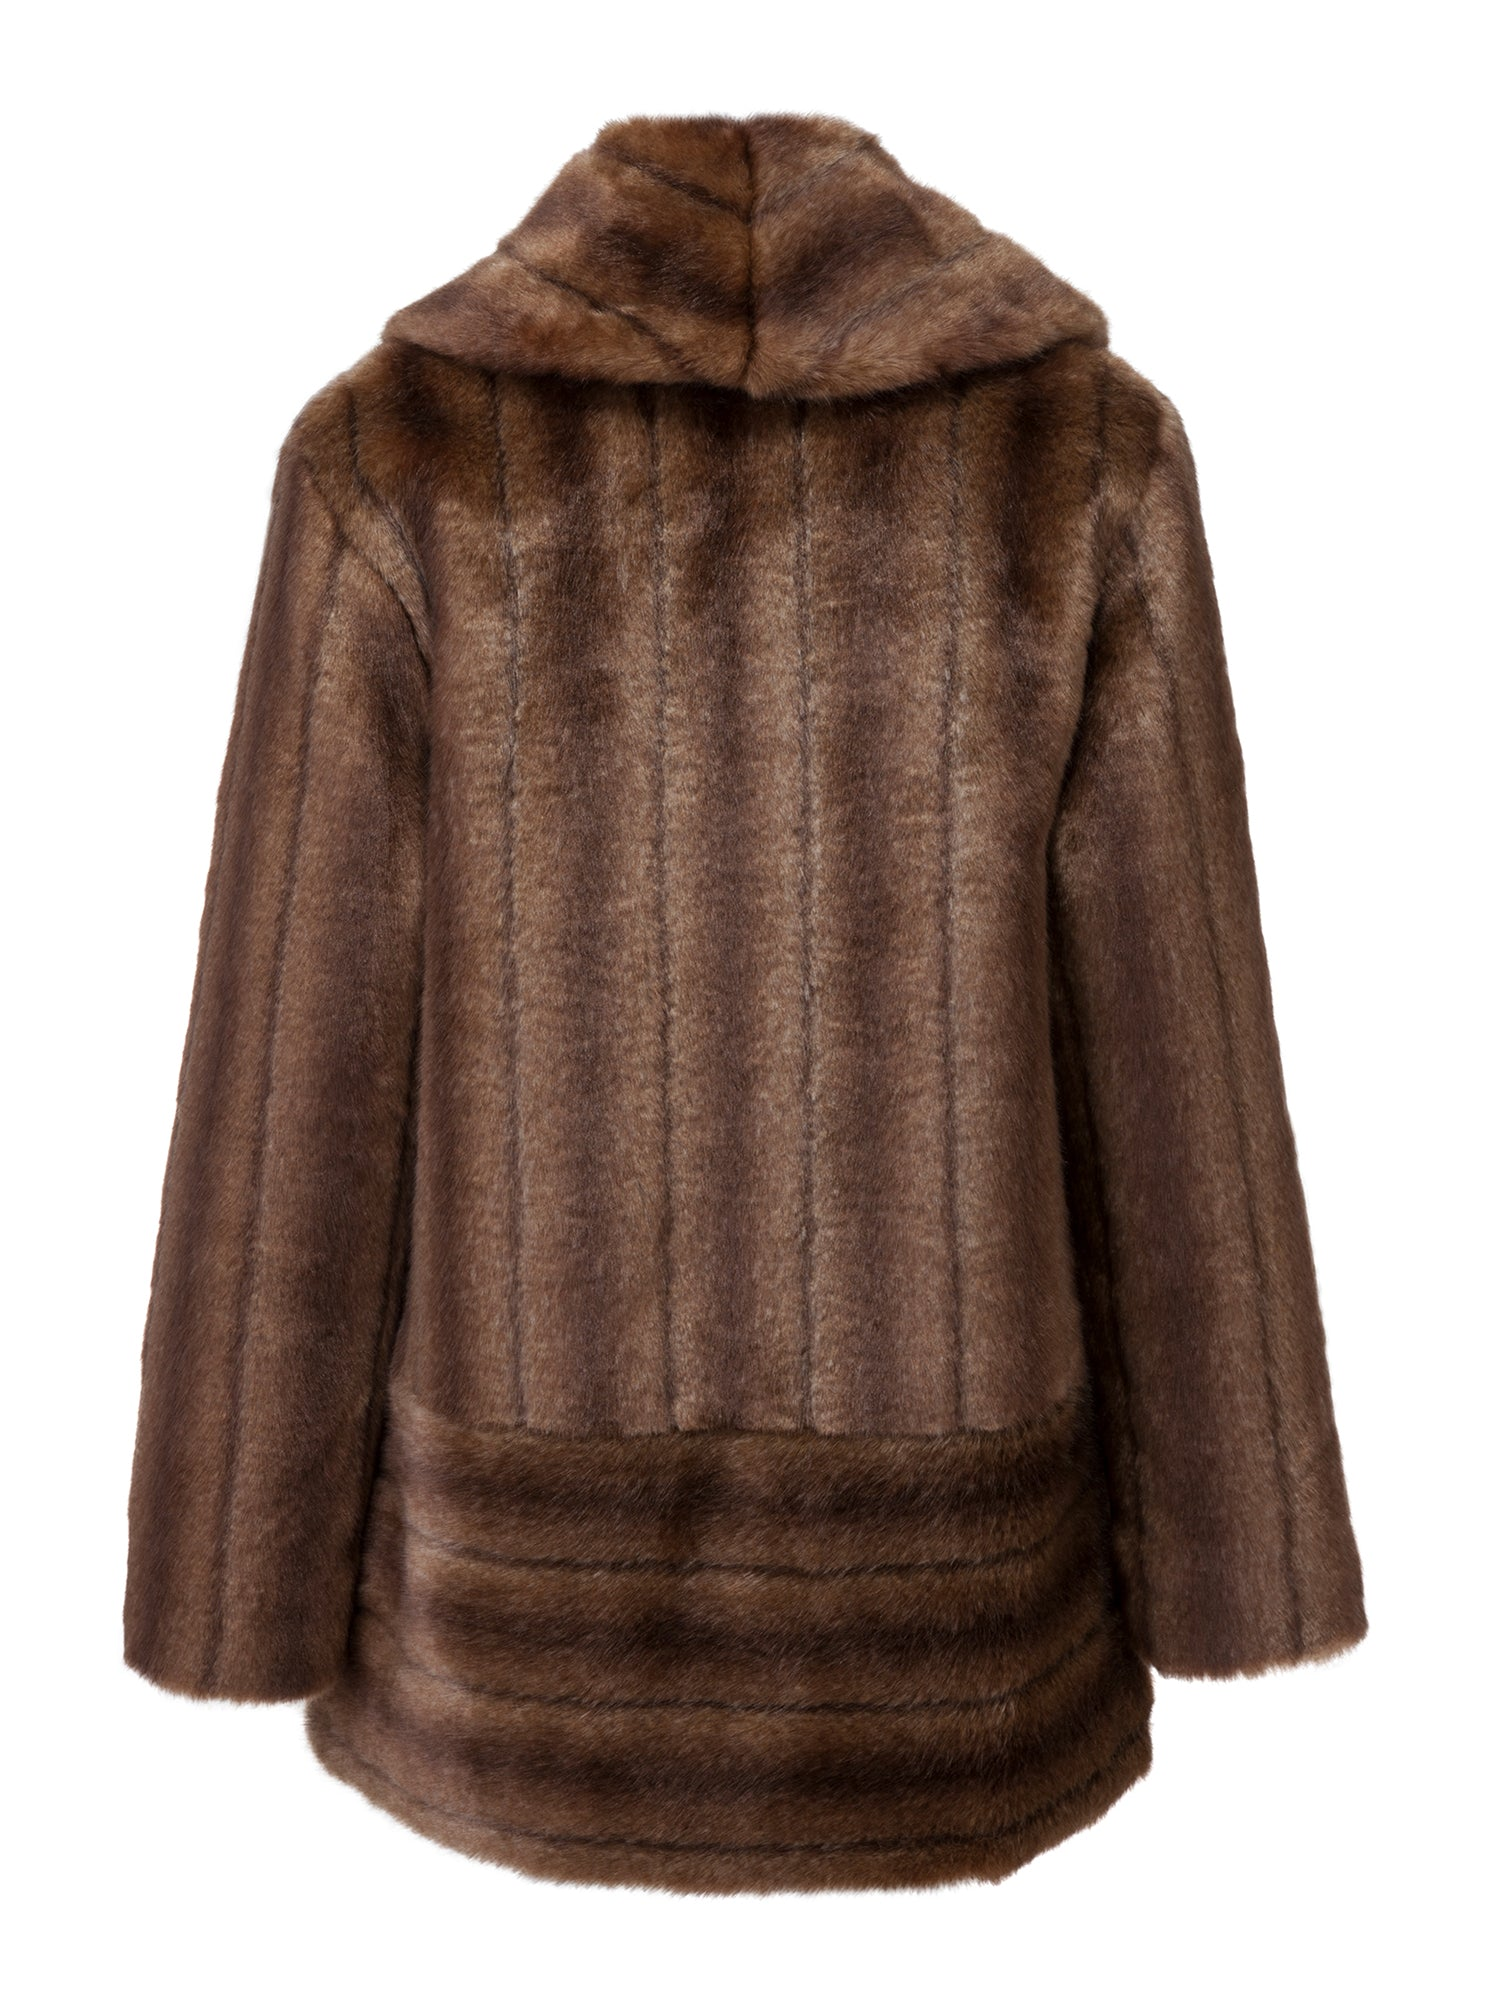 A Packshot Of Marei1998's Labiatae Faux Fur Coat In Classic Brown Color. Made From Plush Faux Fur, Which Feels So Warm And Comfortable. Cut In A Slight A-Line Shape And Fully Lined, It Is Ideal For Smooth Layering. Timeless Winter Investment. Back View.